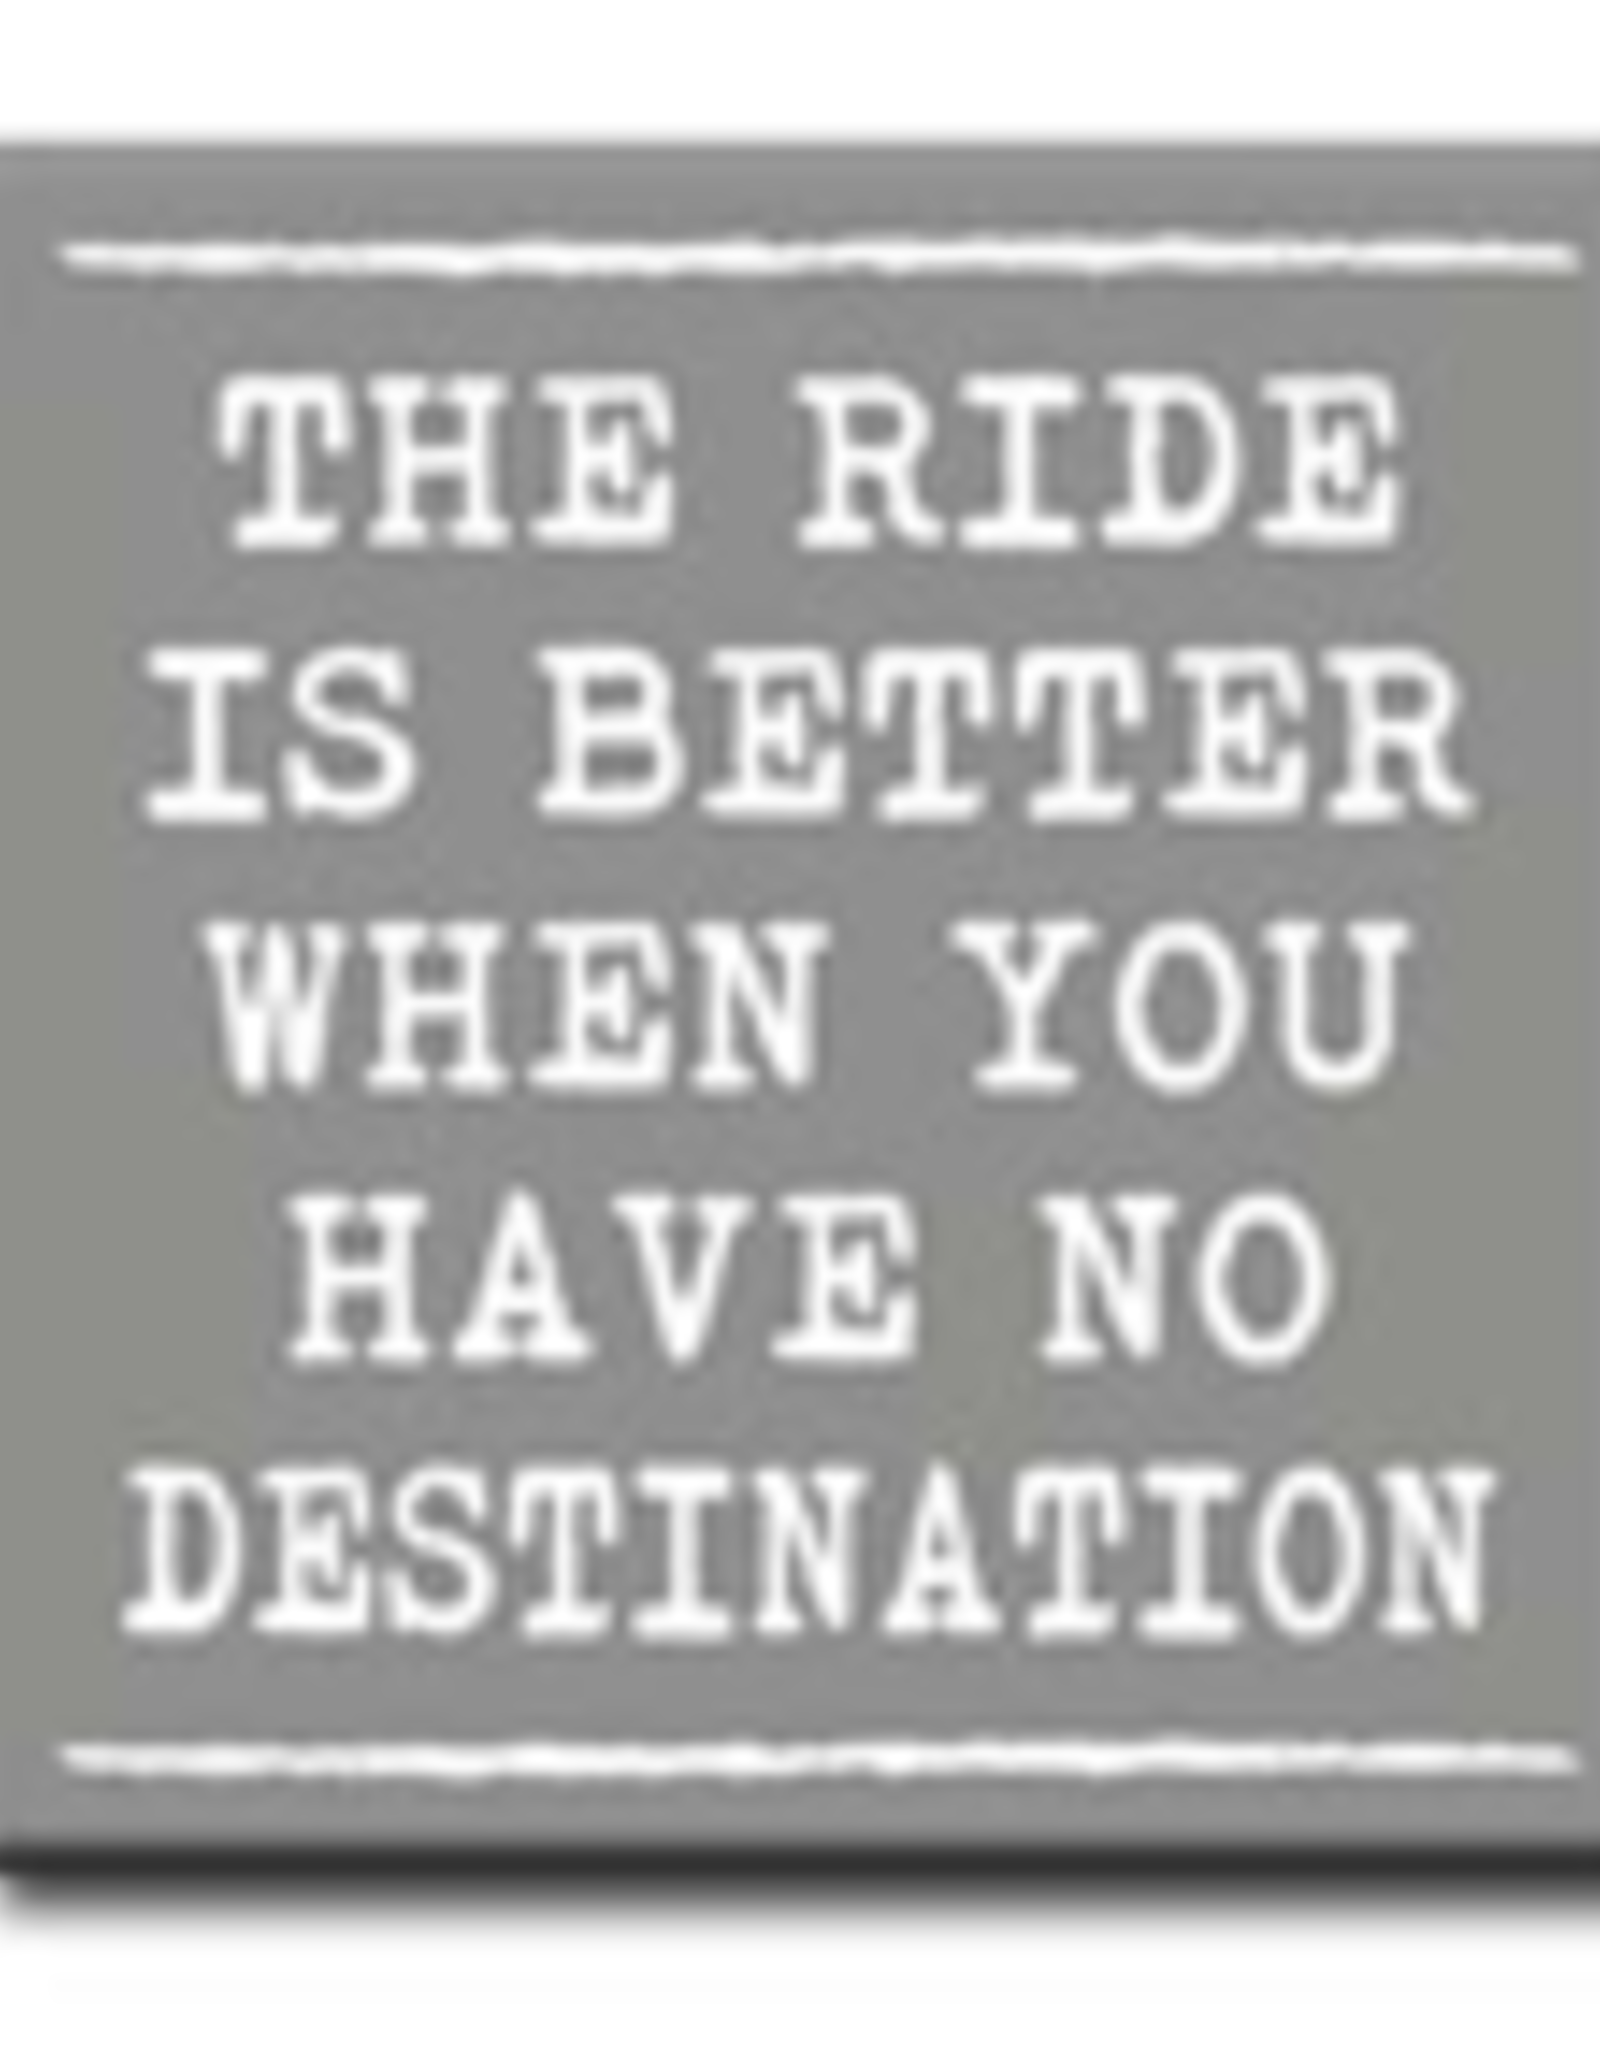 The Ride Is Better Destination 4x4